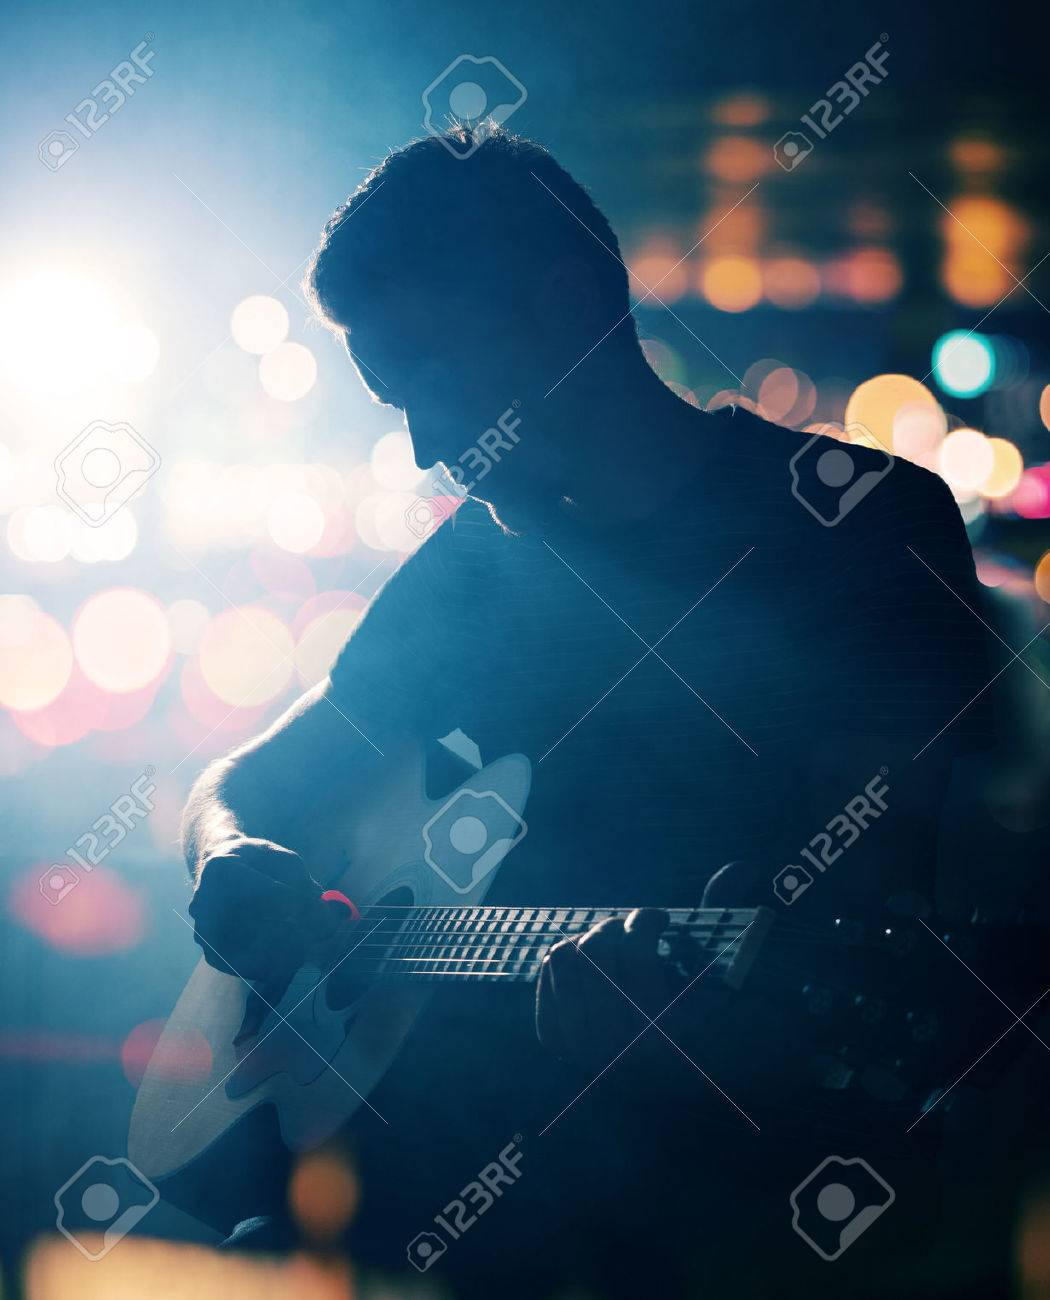 Guitarist playing acoustic guitar. Unplugged performance in the dark. Stock Photo - 34980660